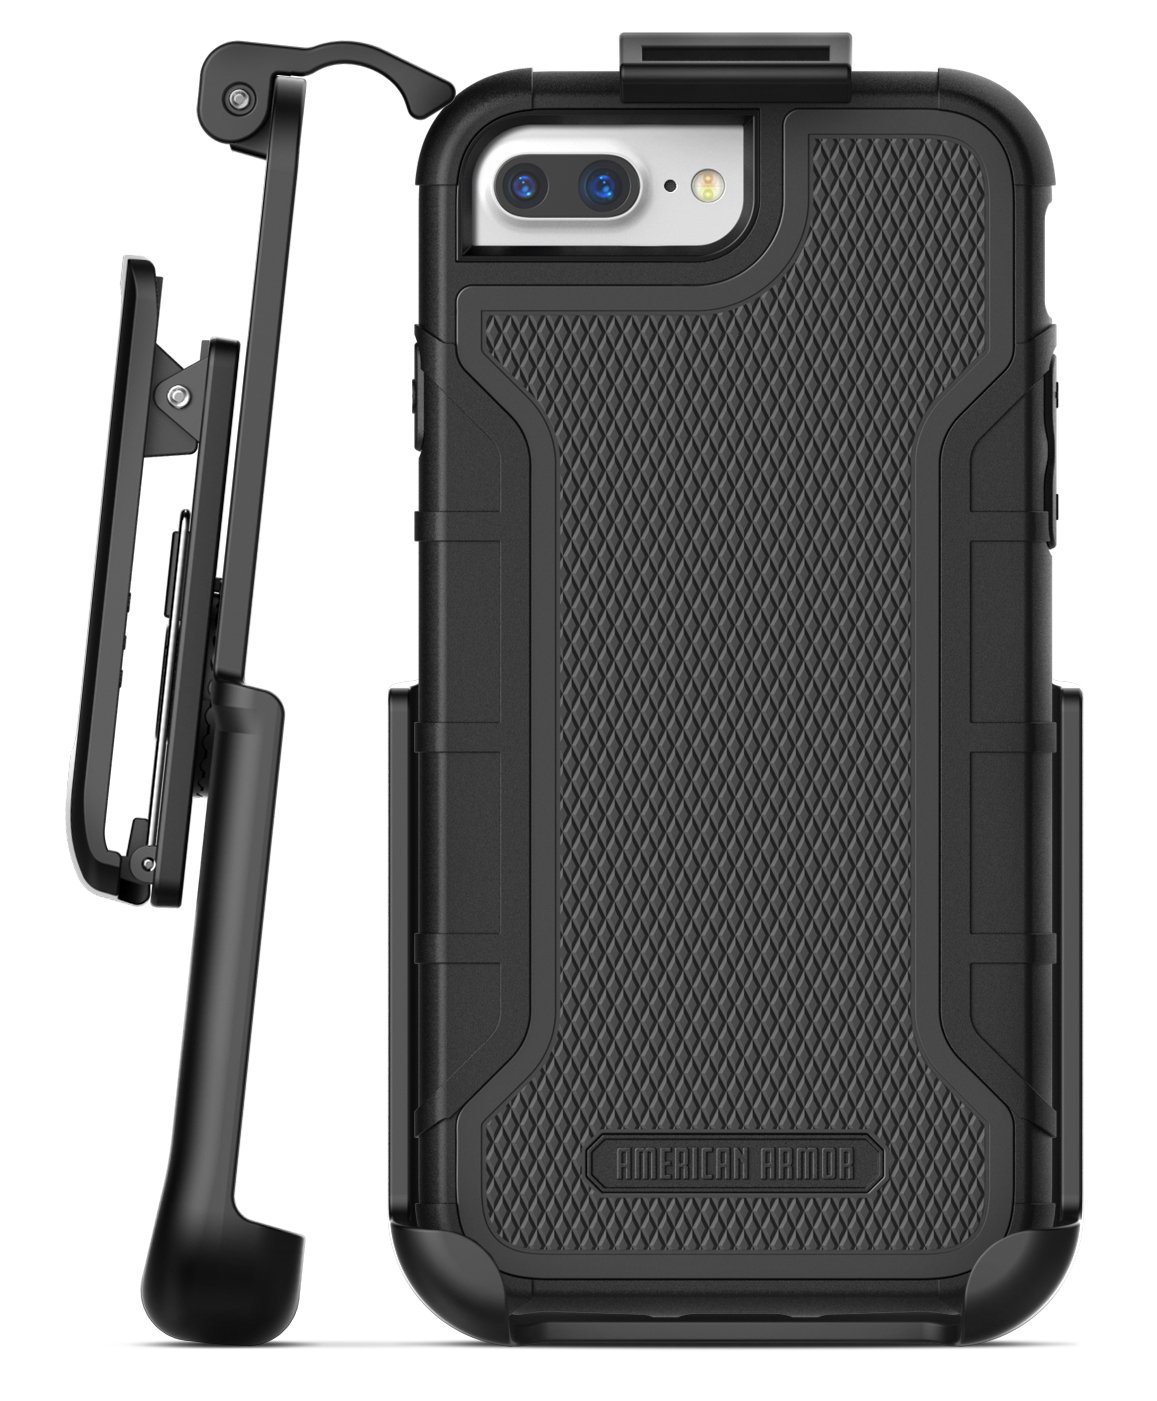 on sale 6bf5c 299fb iPhone 8 Plus American Armor Case And Holster Black